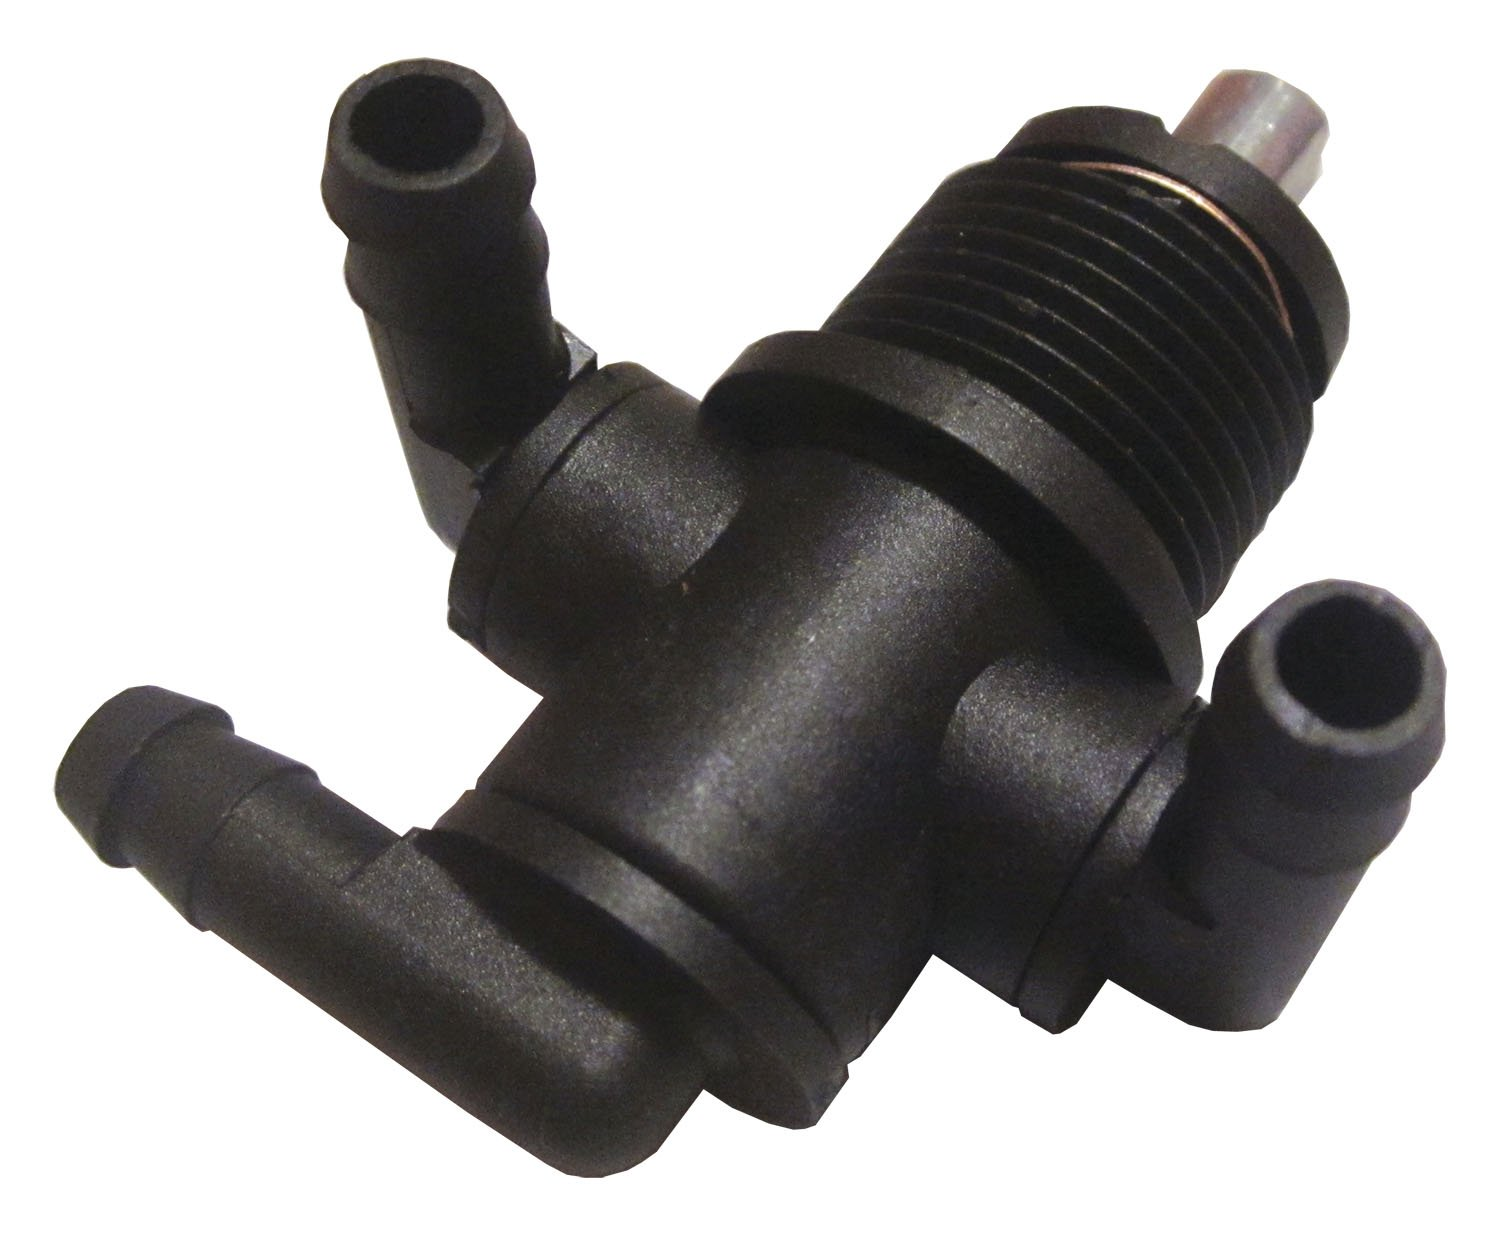 Amazon.com: Polaris Sportsman 335 400 500 600 700 - 3 Way Fuel Shutoff  Valve - 7052161: Automotive